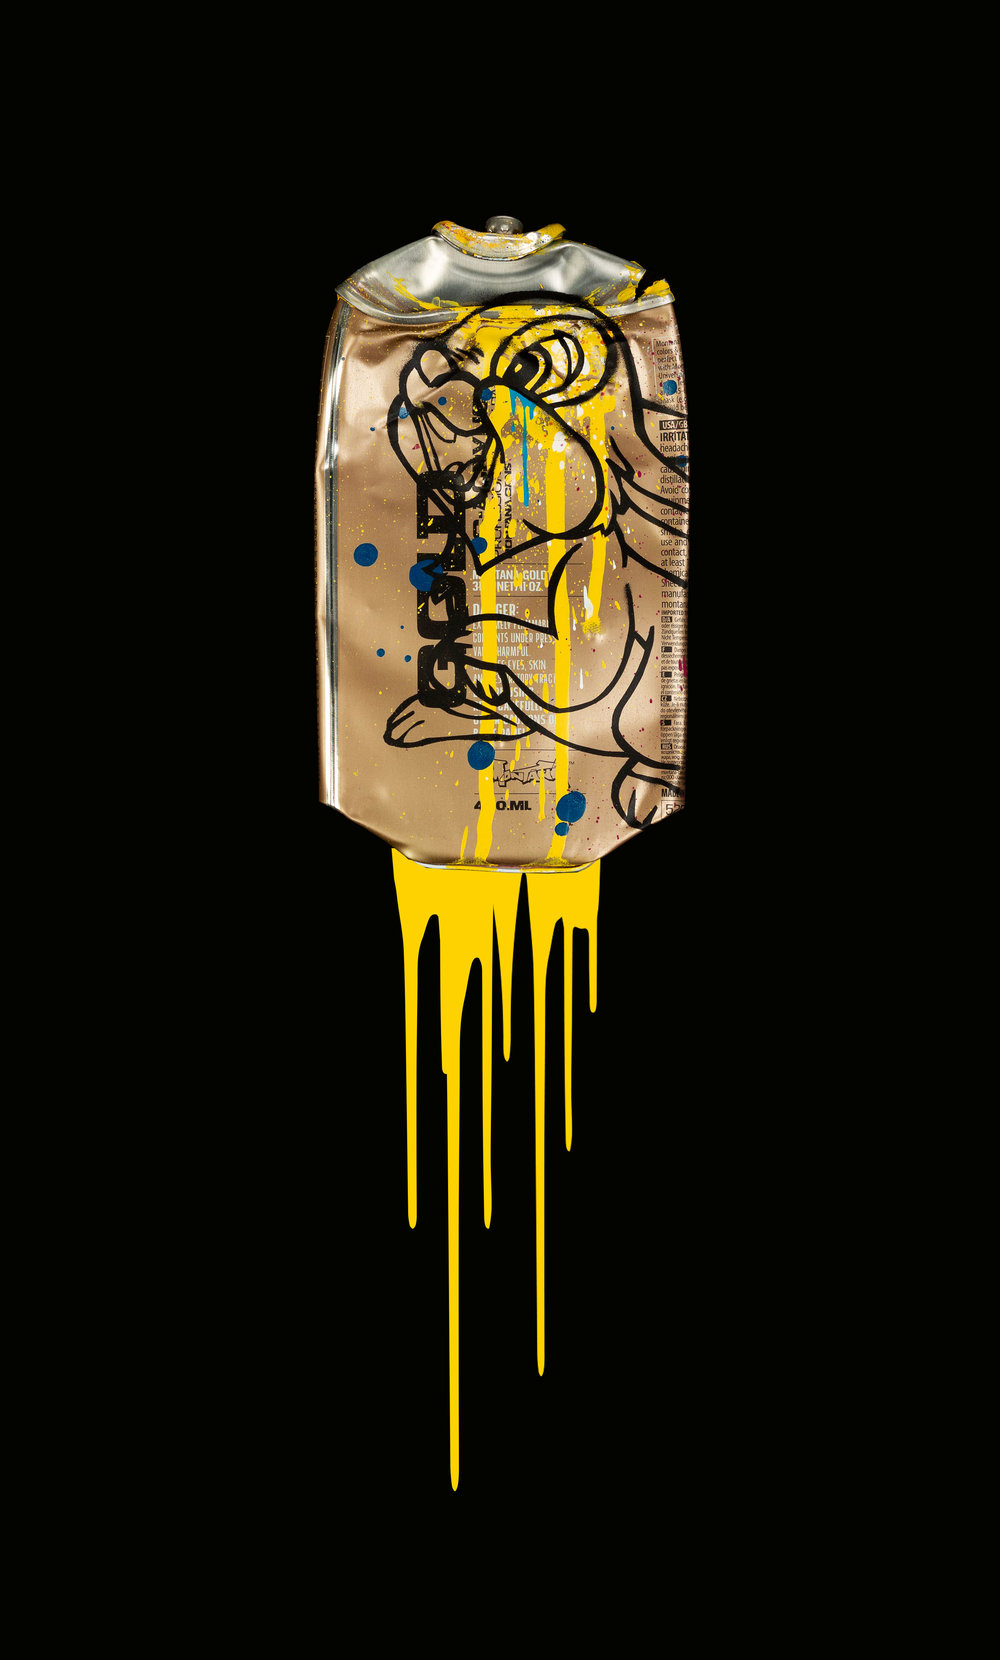 Thumper-Montana-Gold-Easter-Yellow-Acrylic-Spray-paint-on-crushed-spray-can-in-museum-perspex-box-frame-27.5cm-x-45cm-x-5.5cm-£725.jpg